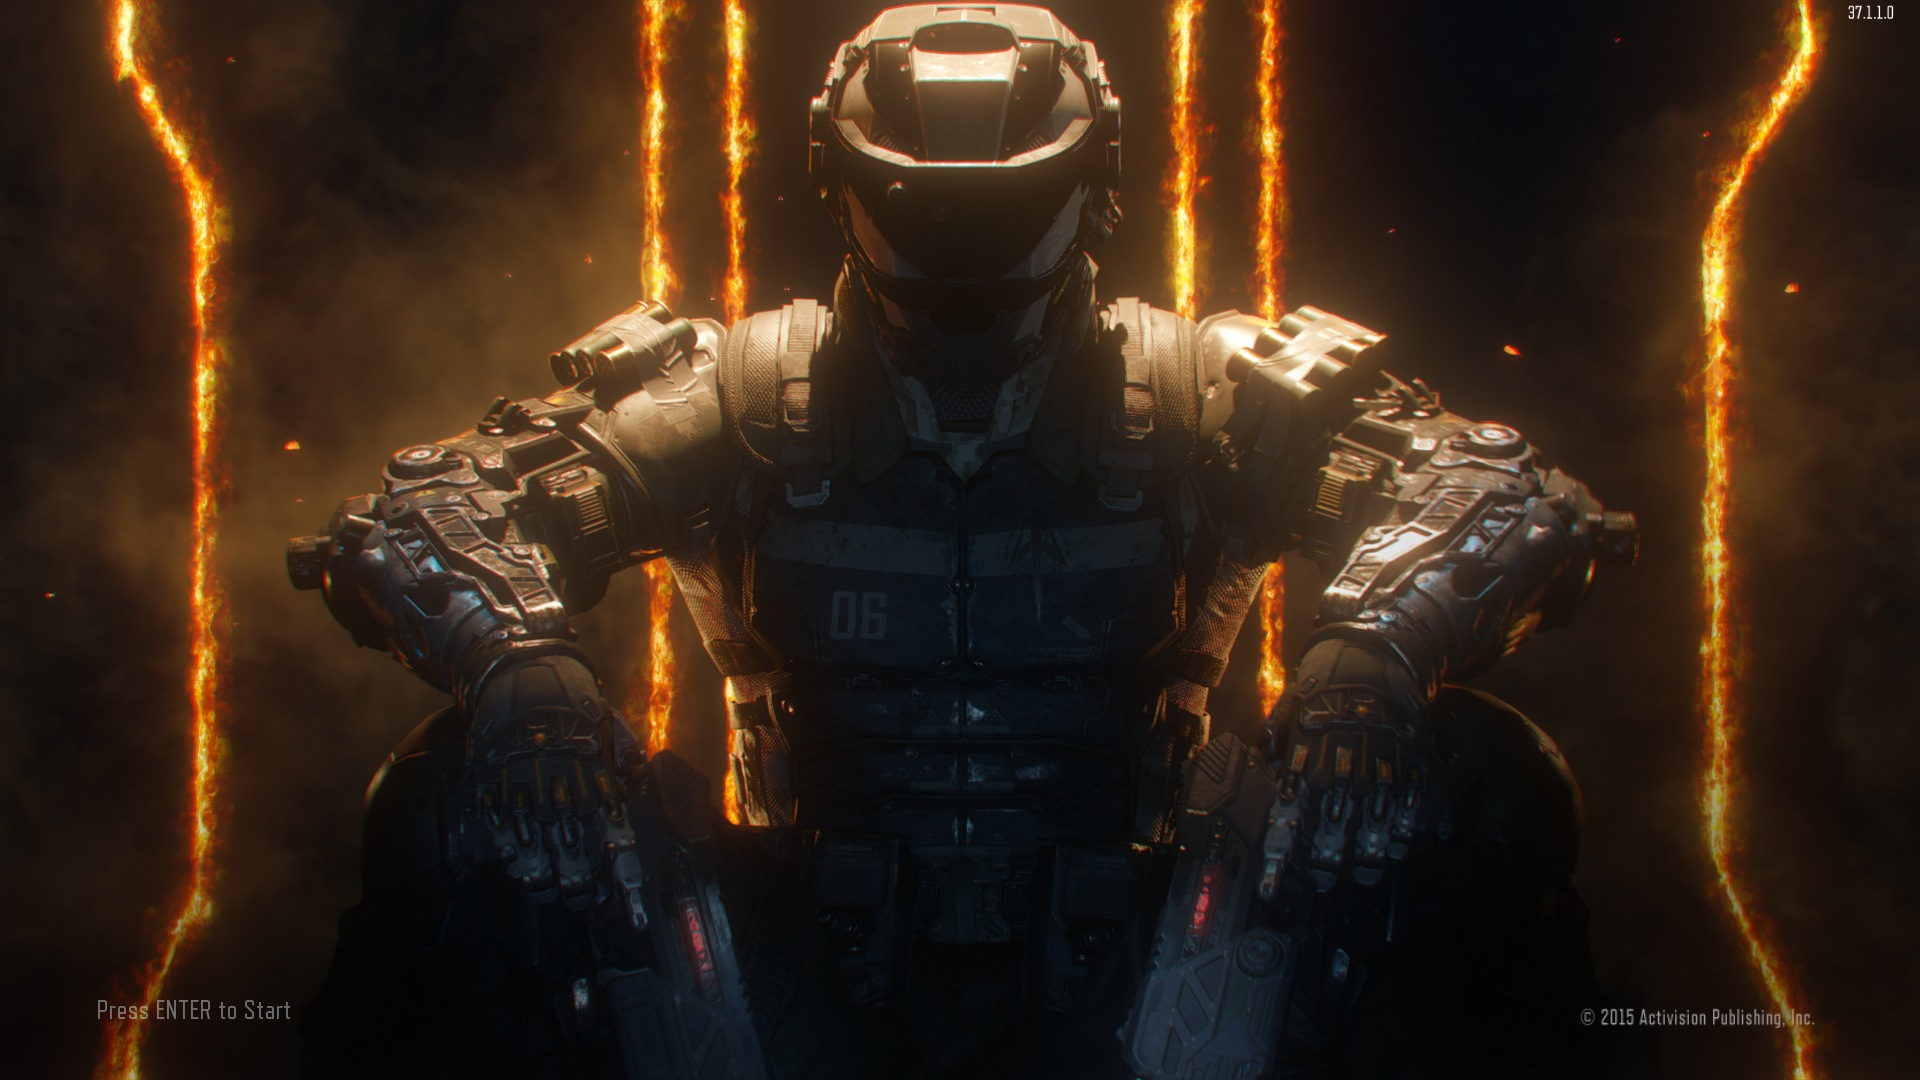 Call Of Duty Black Ops 3 Zombies Wallpaper Posted By Ryan Johnson